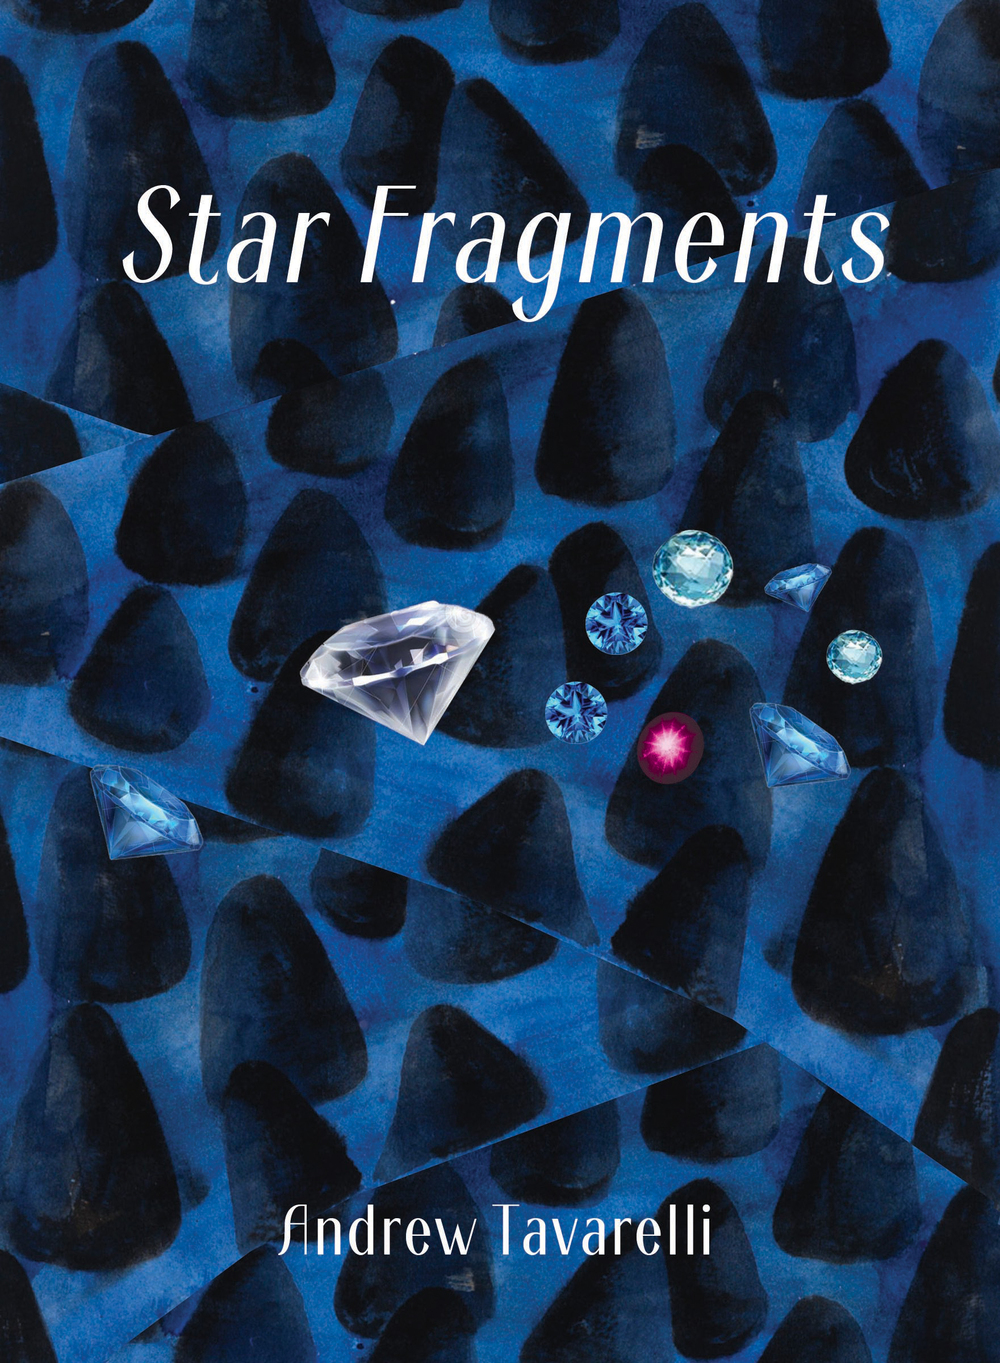 Star Fragments